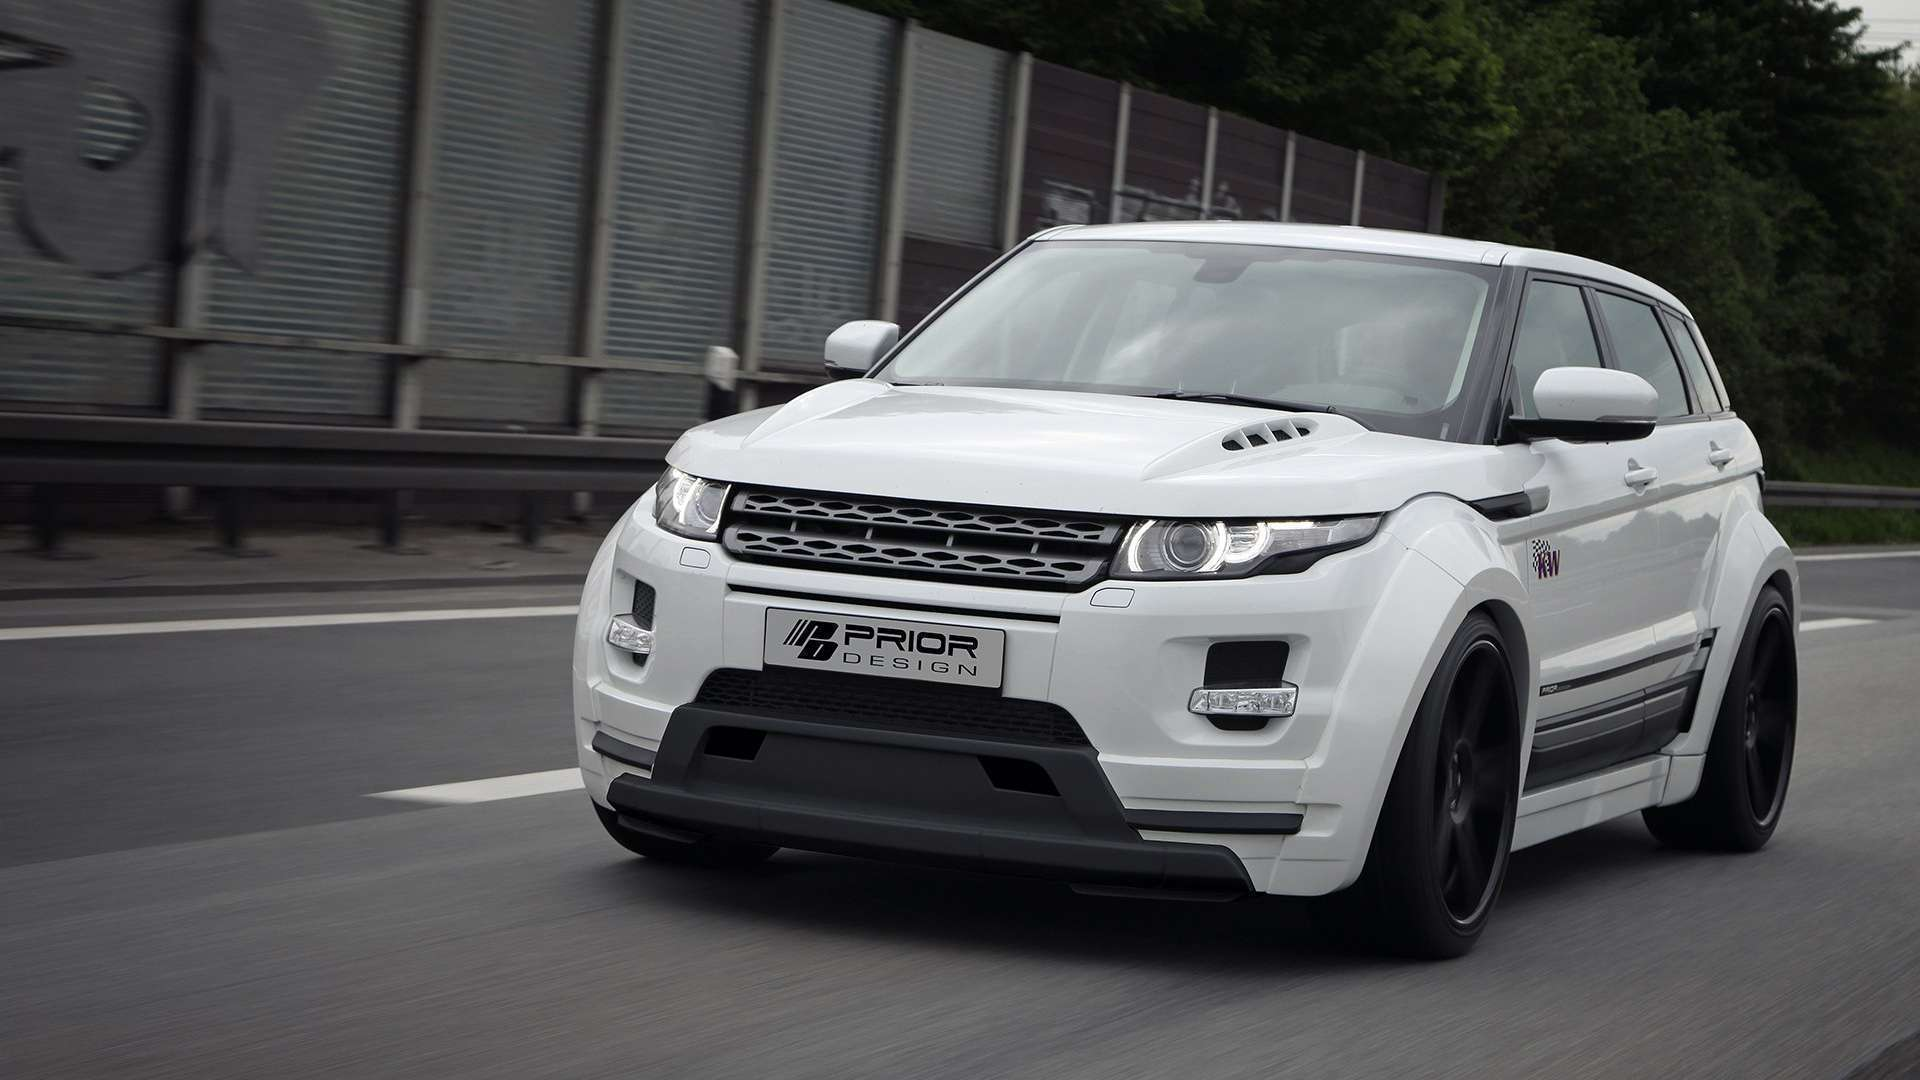 Land Rover Hd Wallpapers For Desktop Laptop Backgrounds